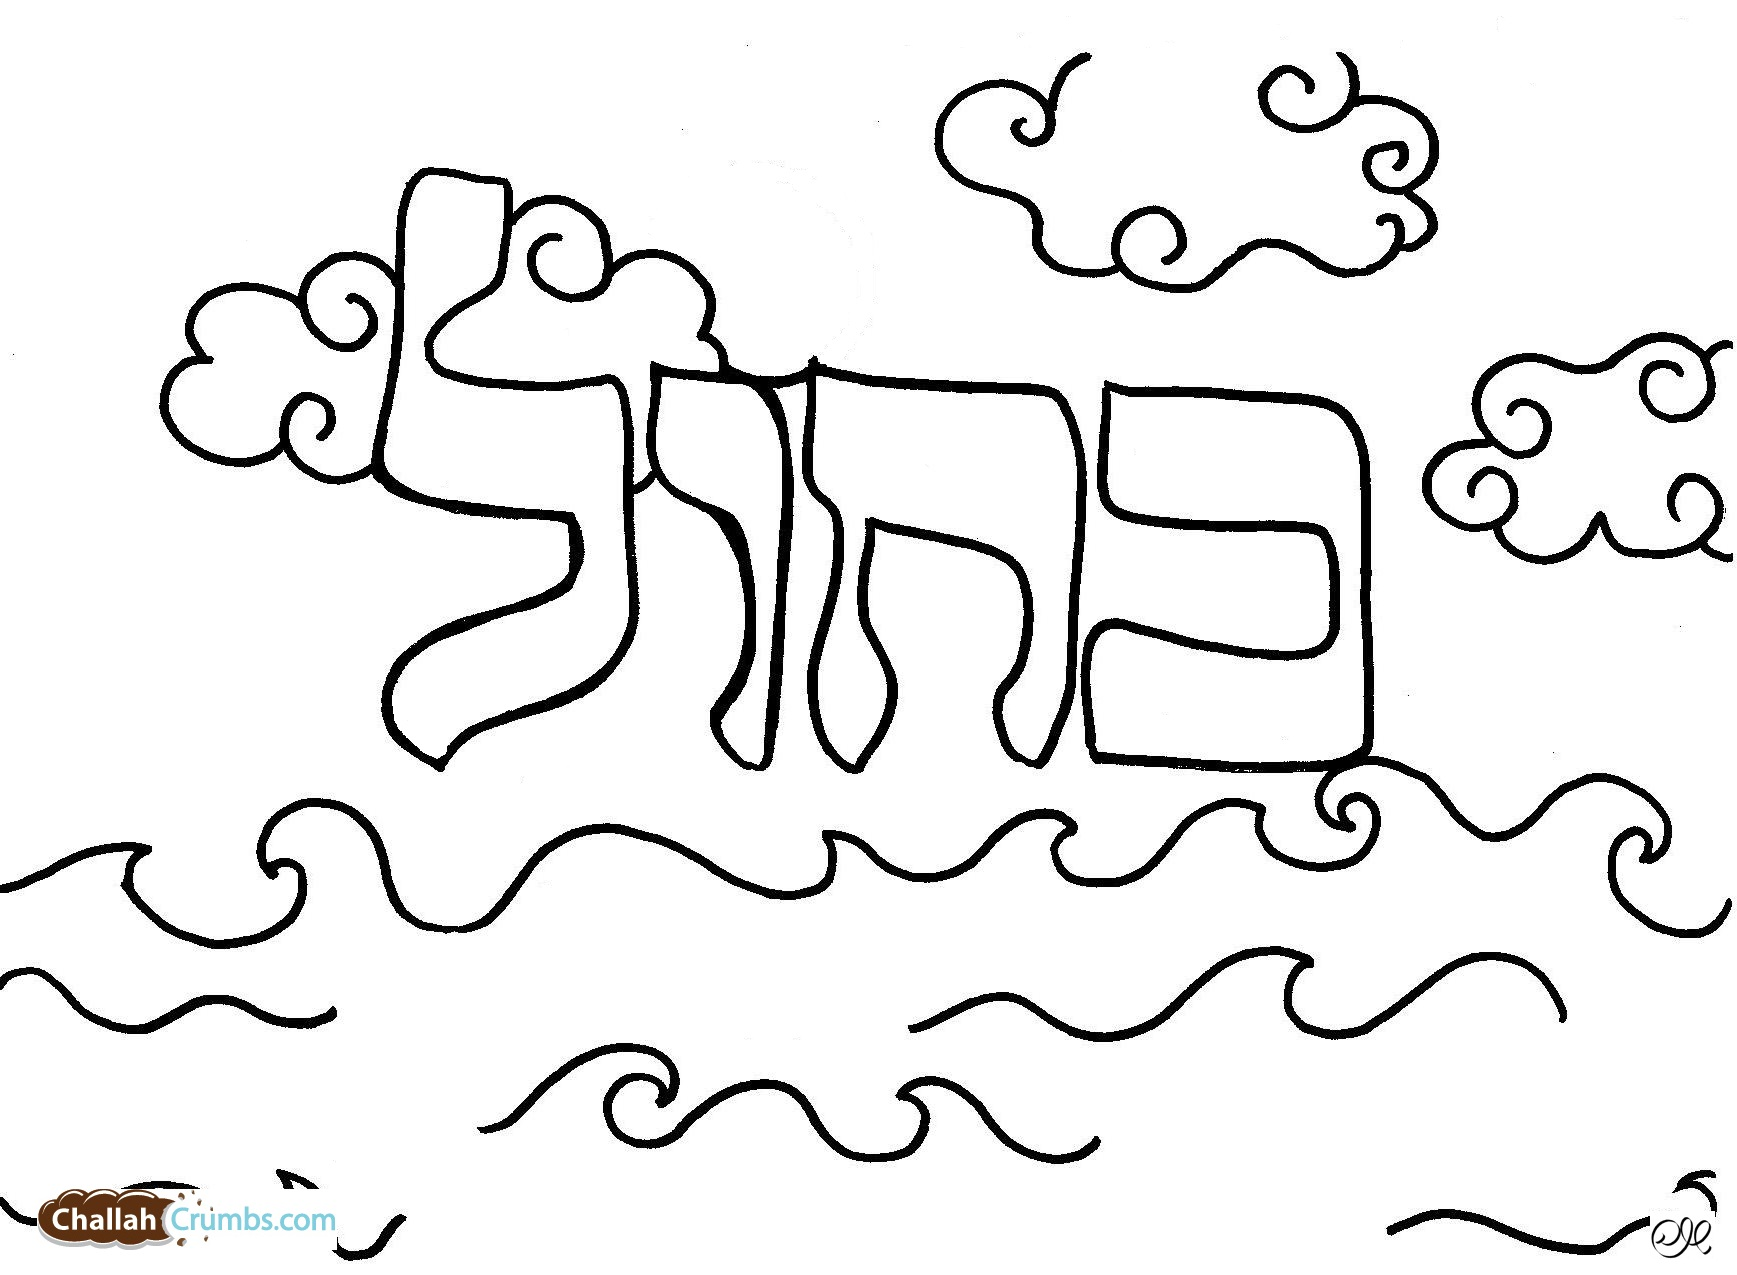 challah coloring pages - photo#21